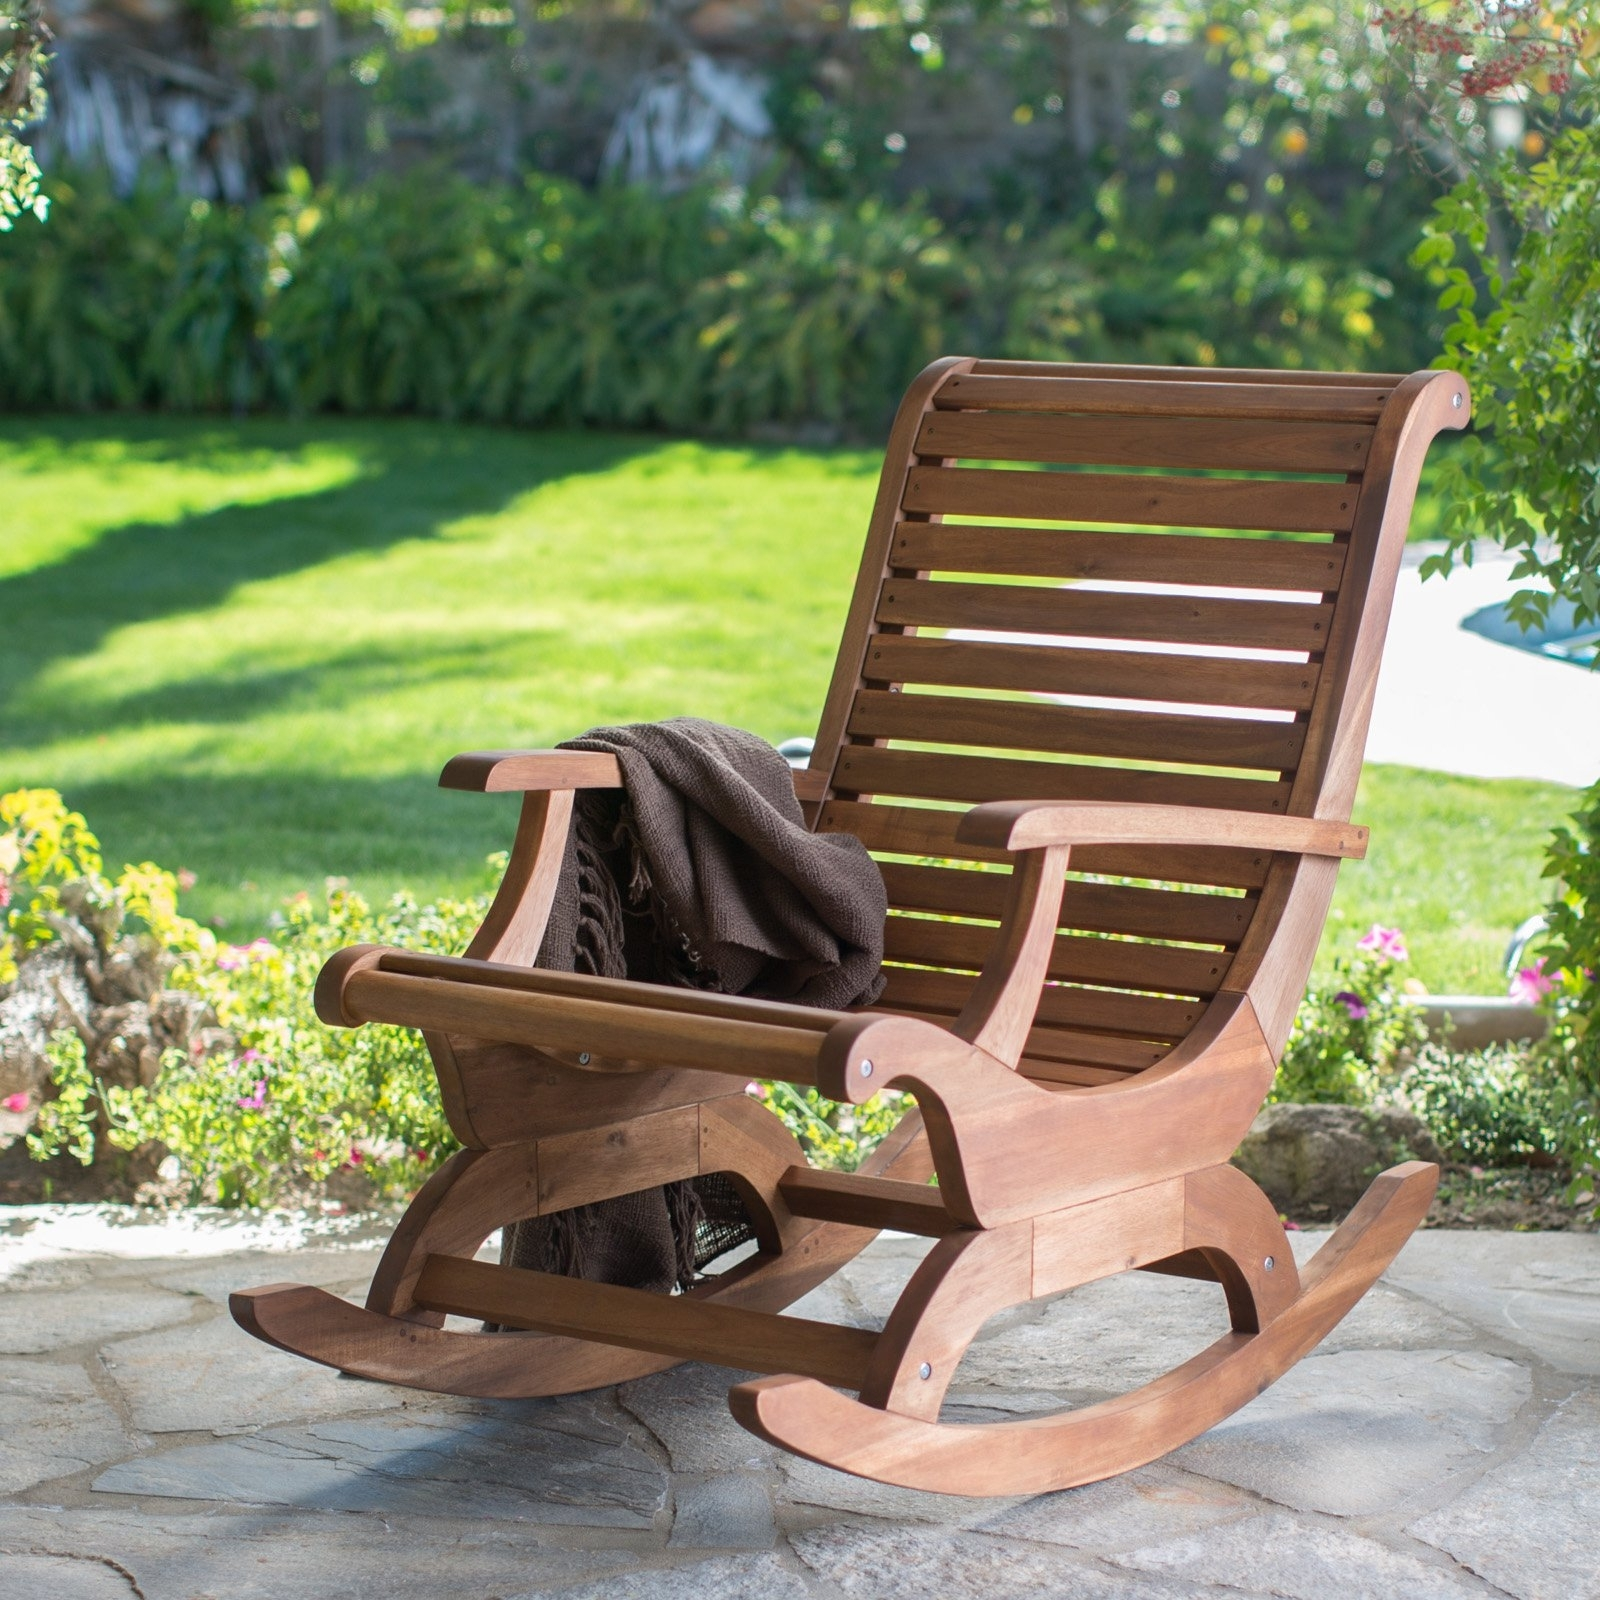 Belham Living Avondale Oversized Outdoor Rocking Chair – Natural Within Preferred Outdoor Rocking Chairs (View 2 of 15)